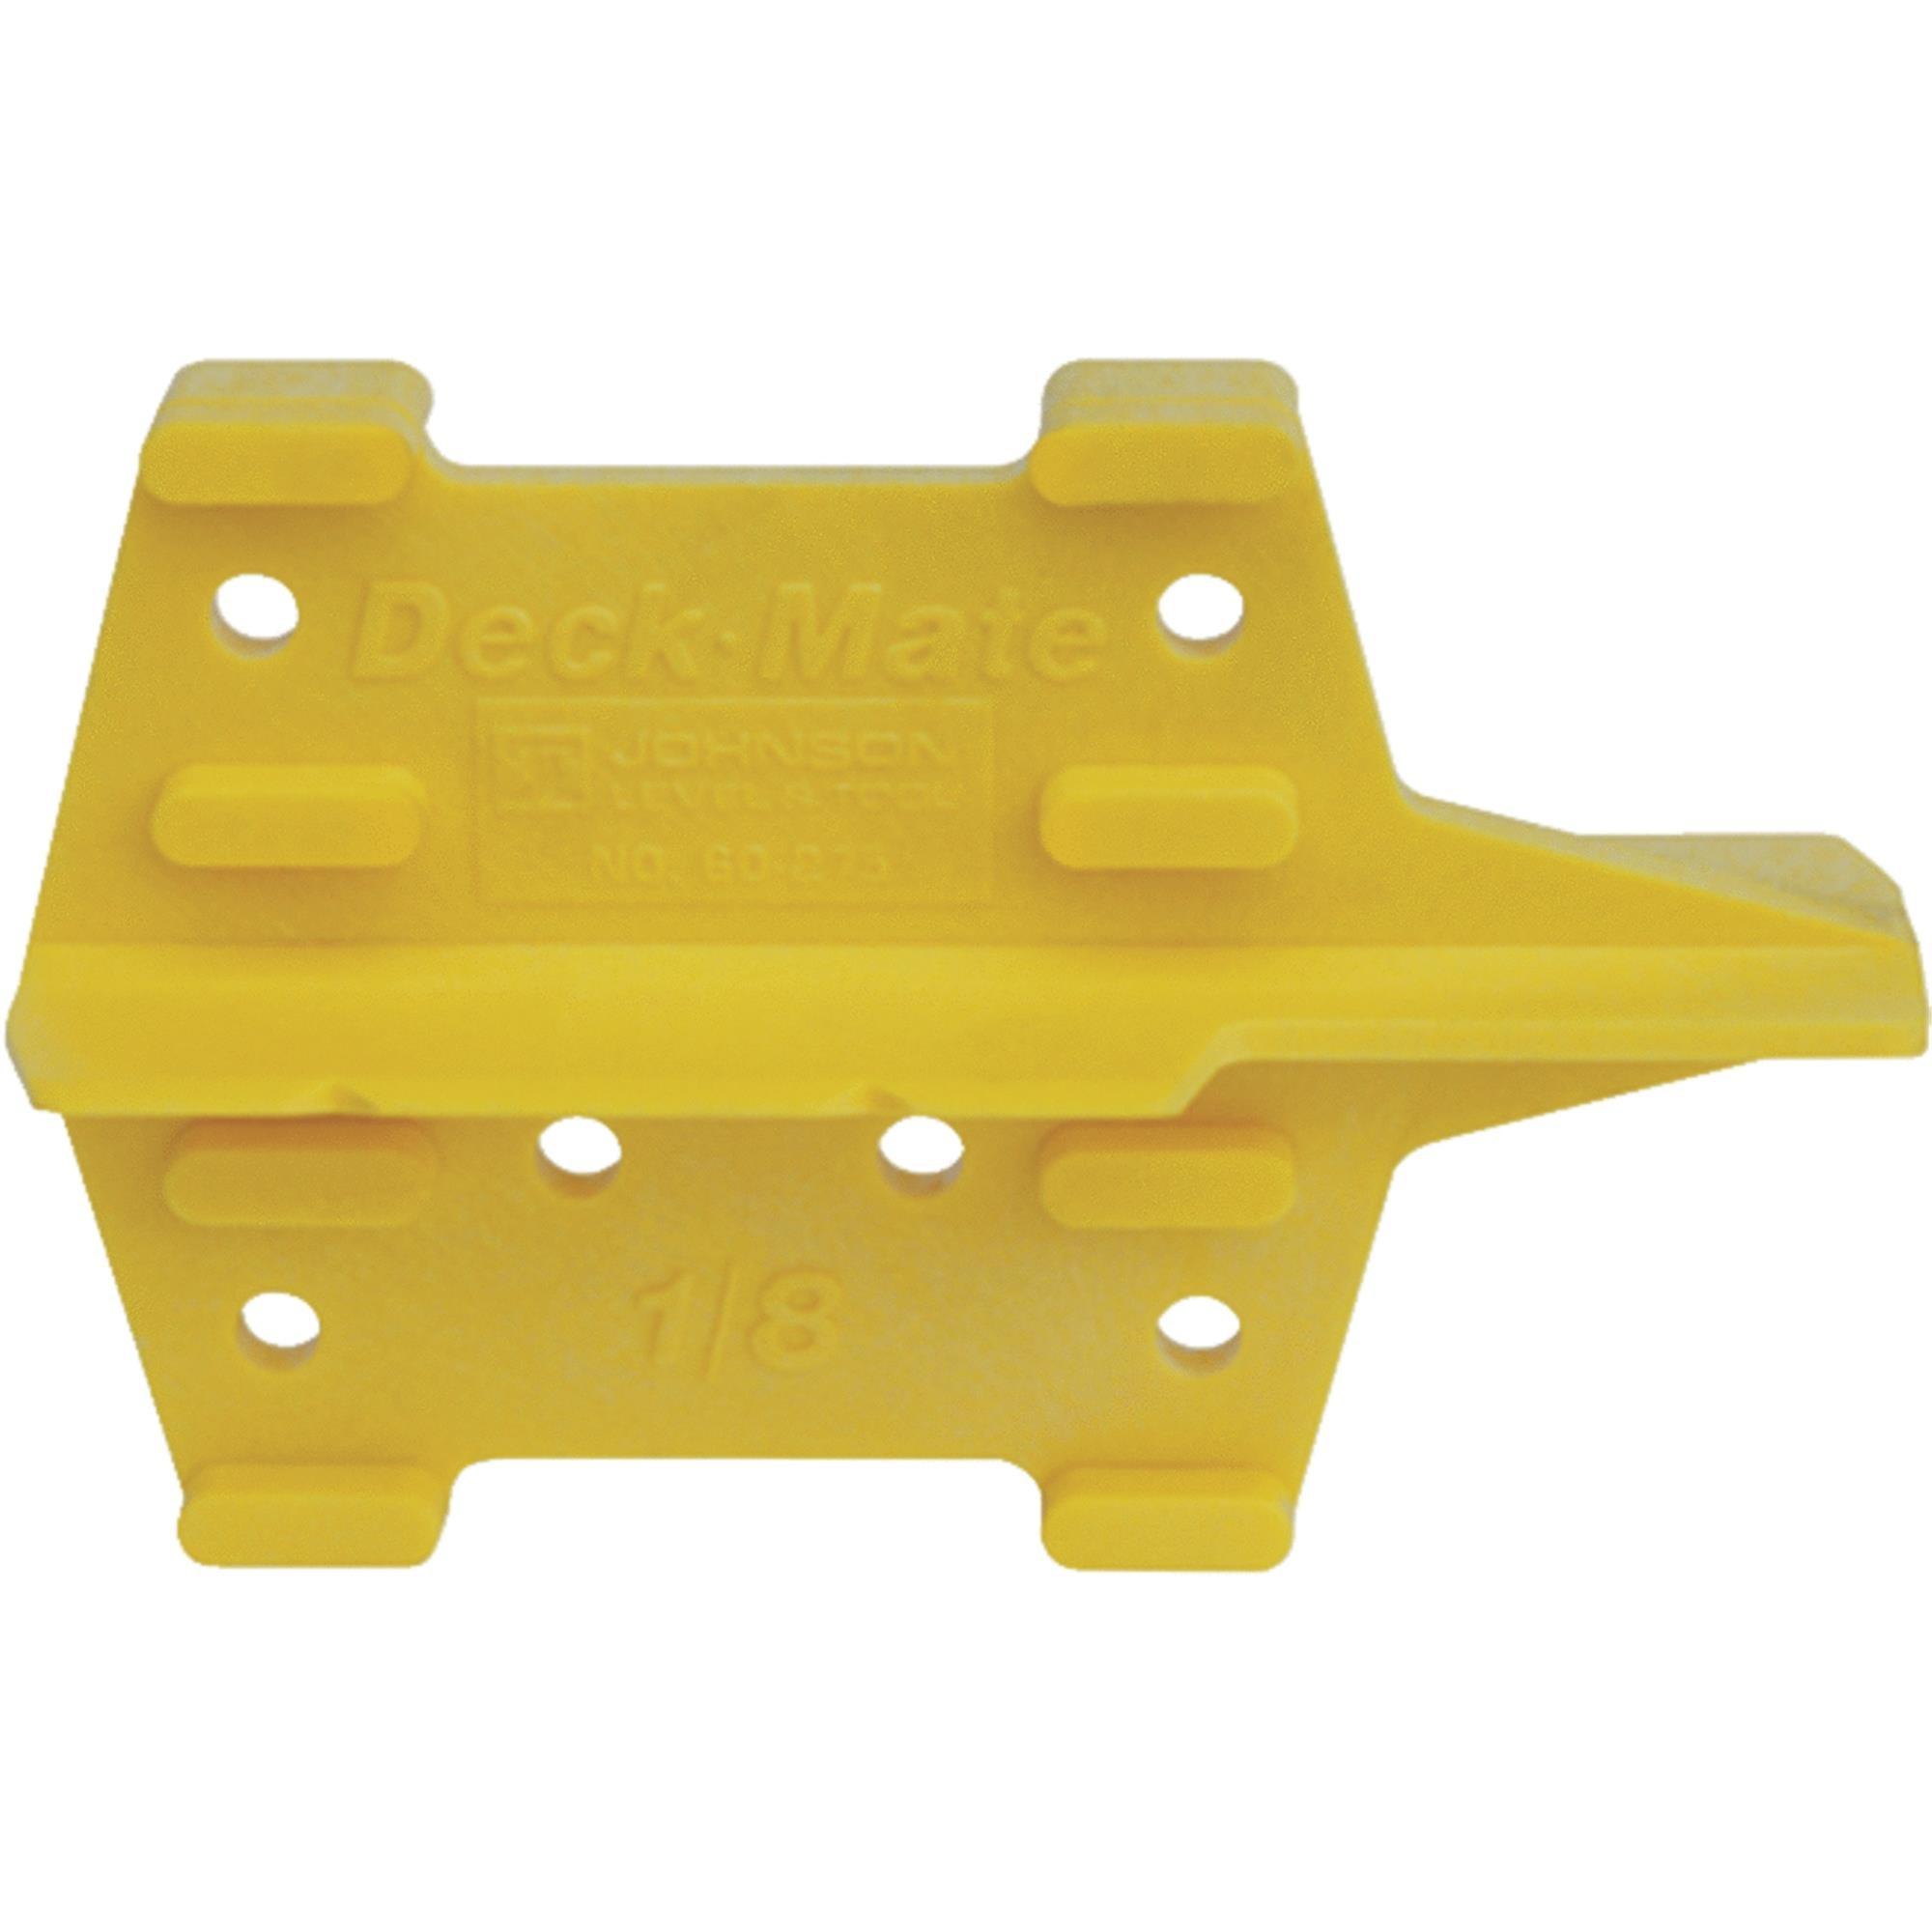 Johnson Level DeckMate Deck Spacing Tool by Johnson Level